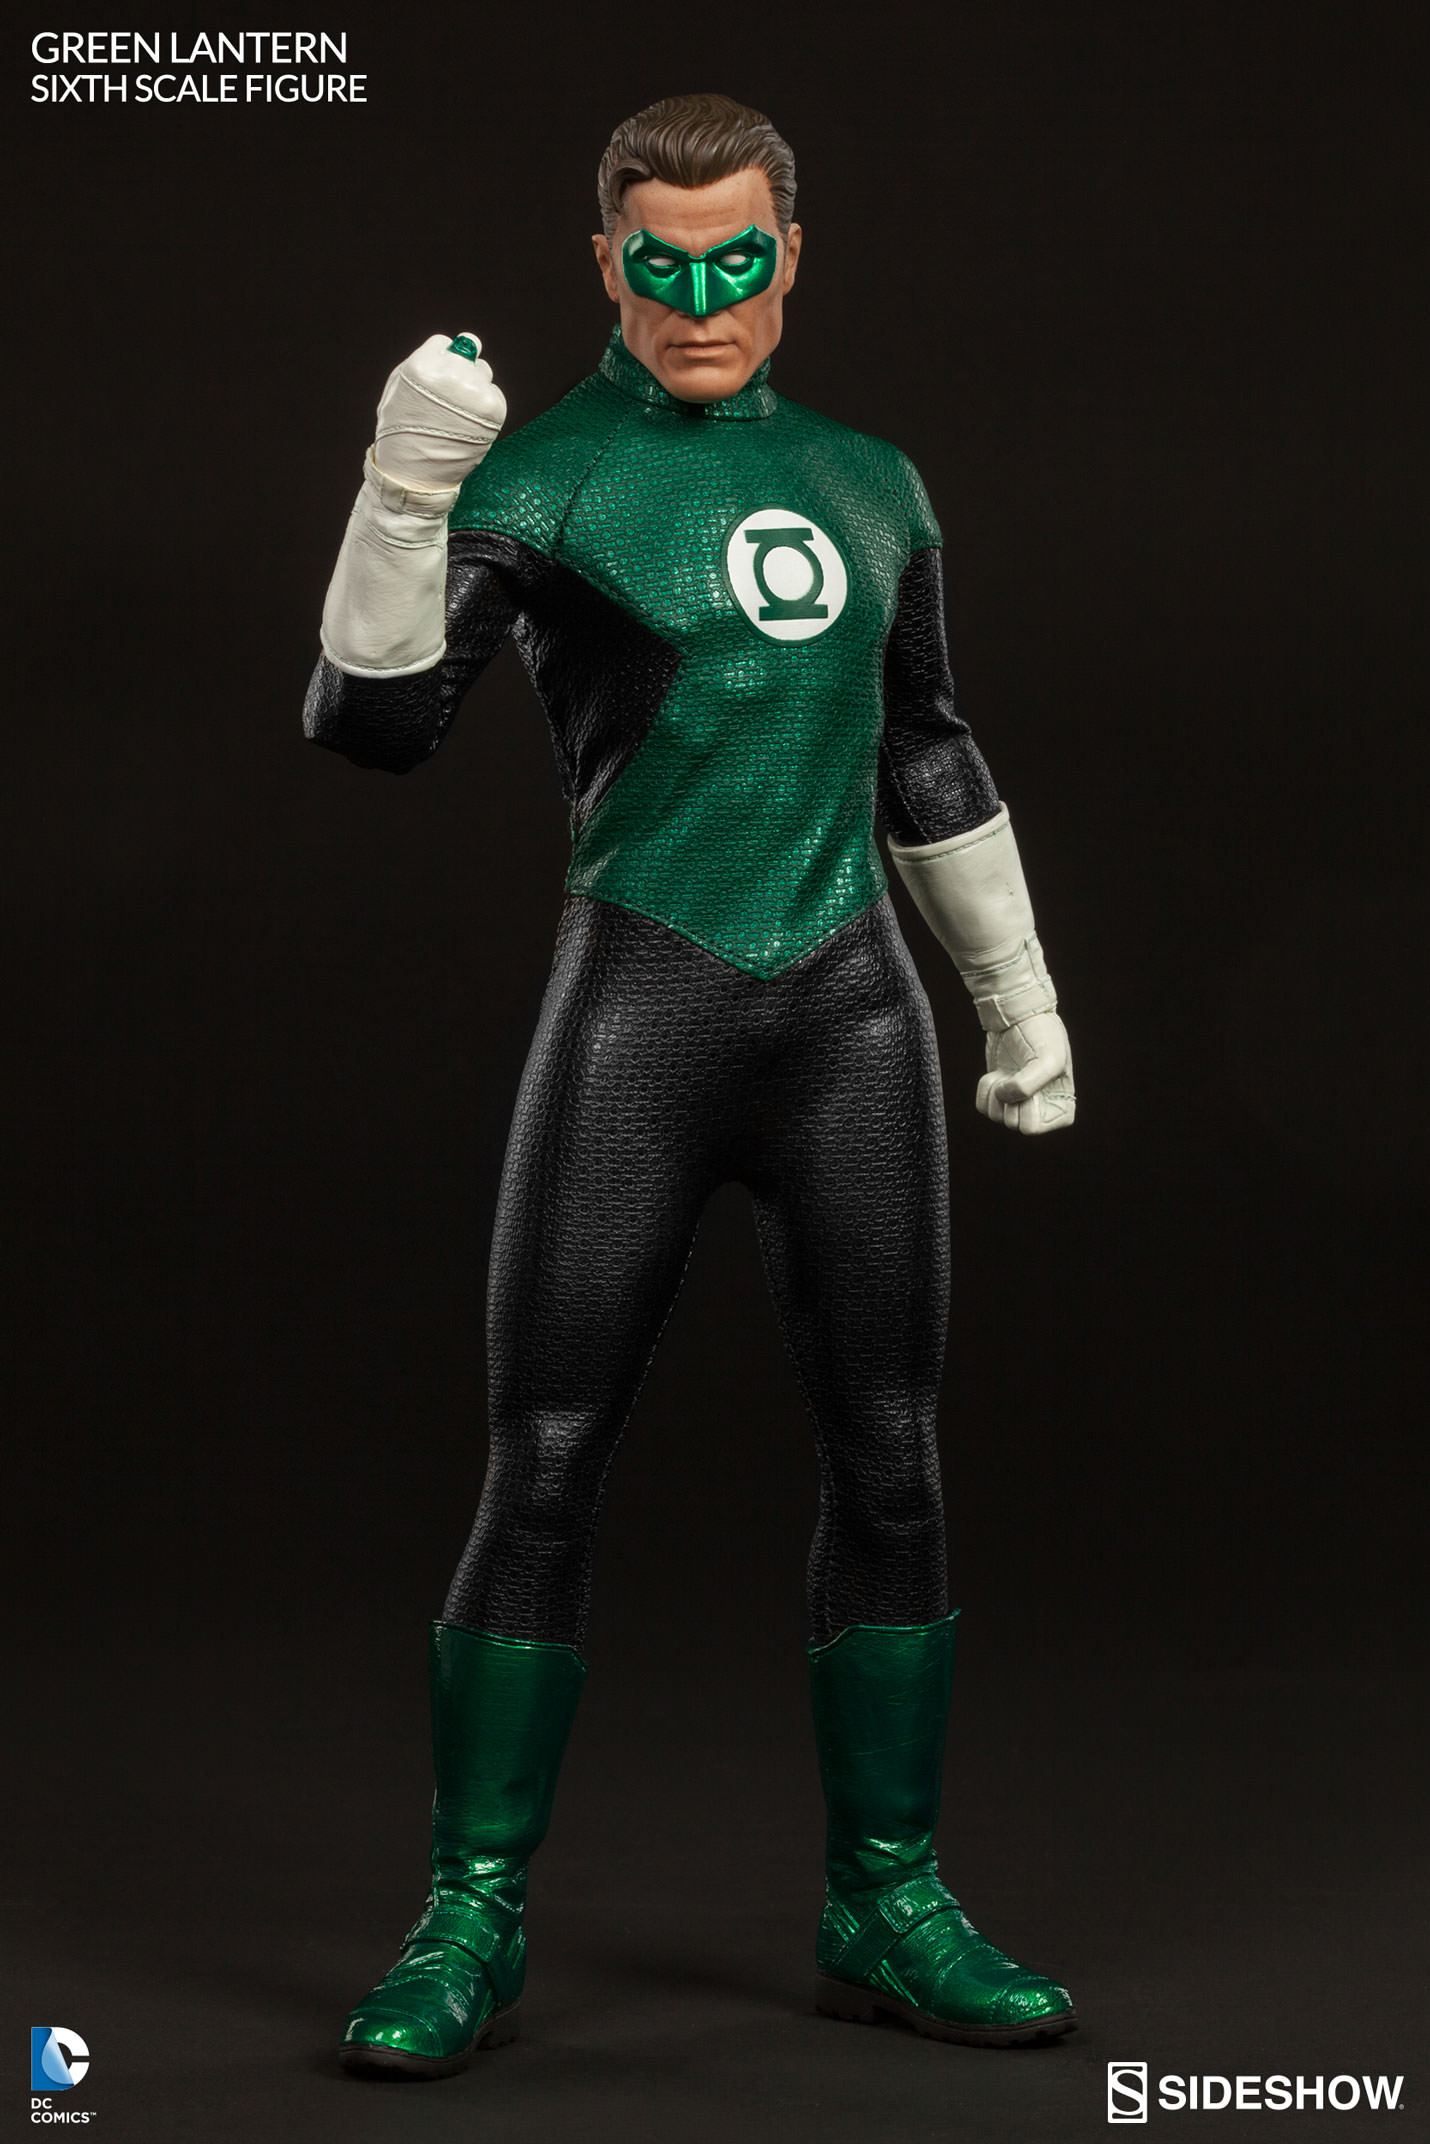 a8f12e236adf2c DC Comics Green Lantern Sixth Scale Figure by Sideshow Colle ...